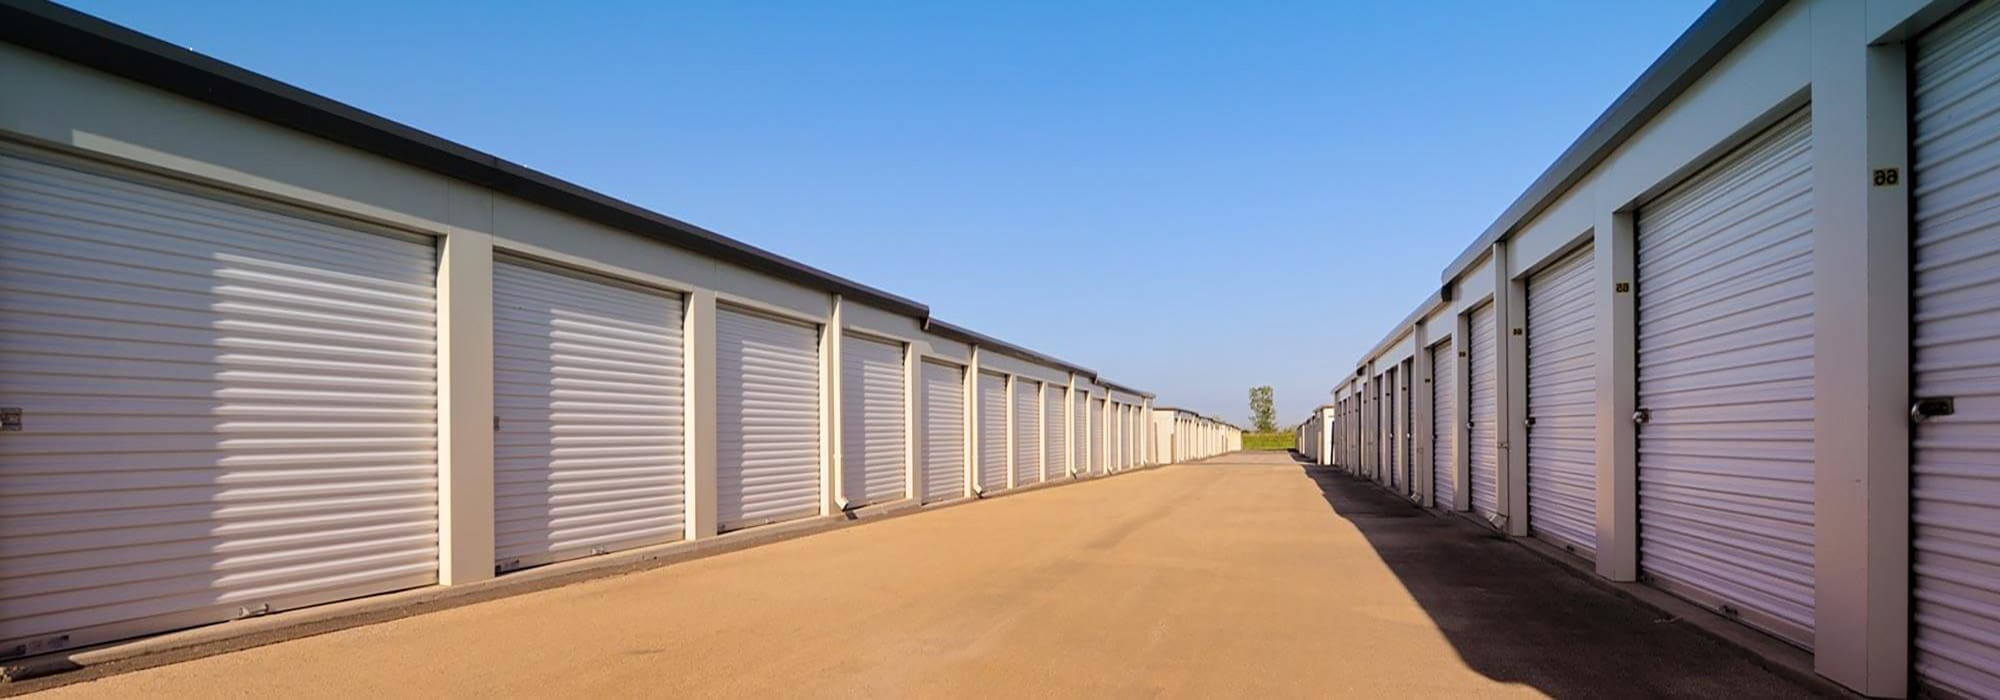 Self storage in Whitsett NC